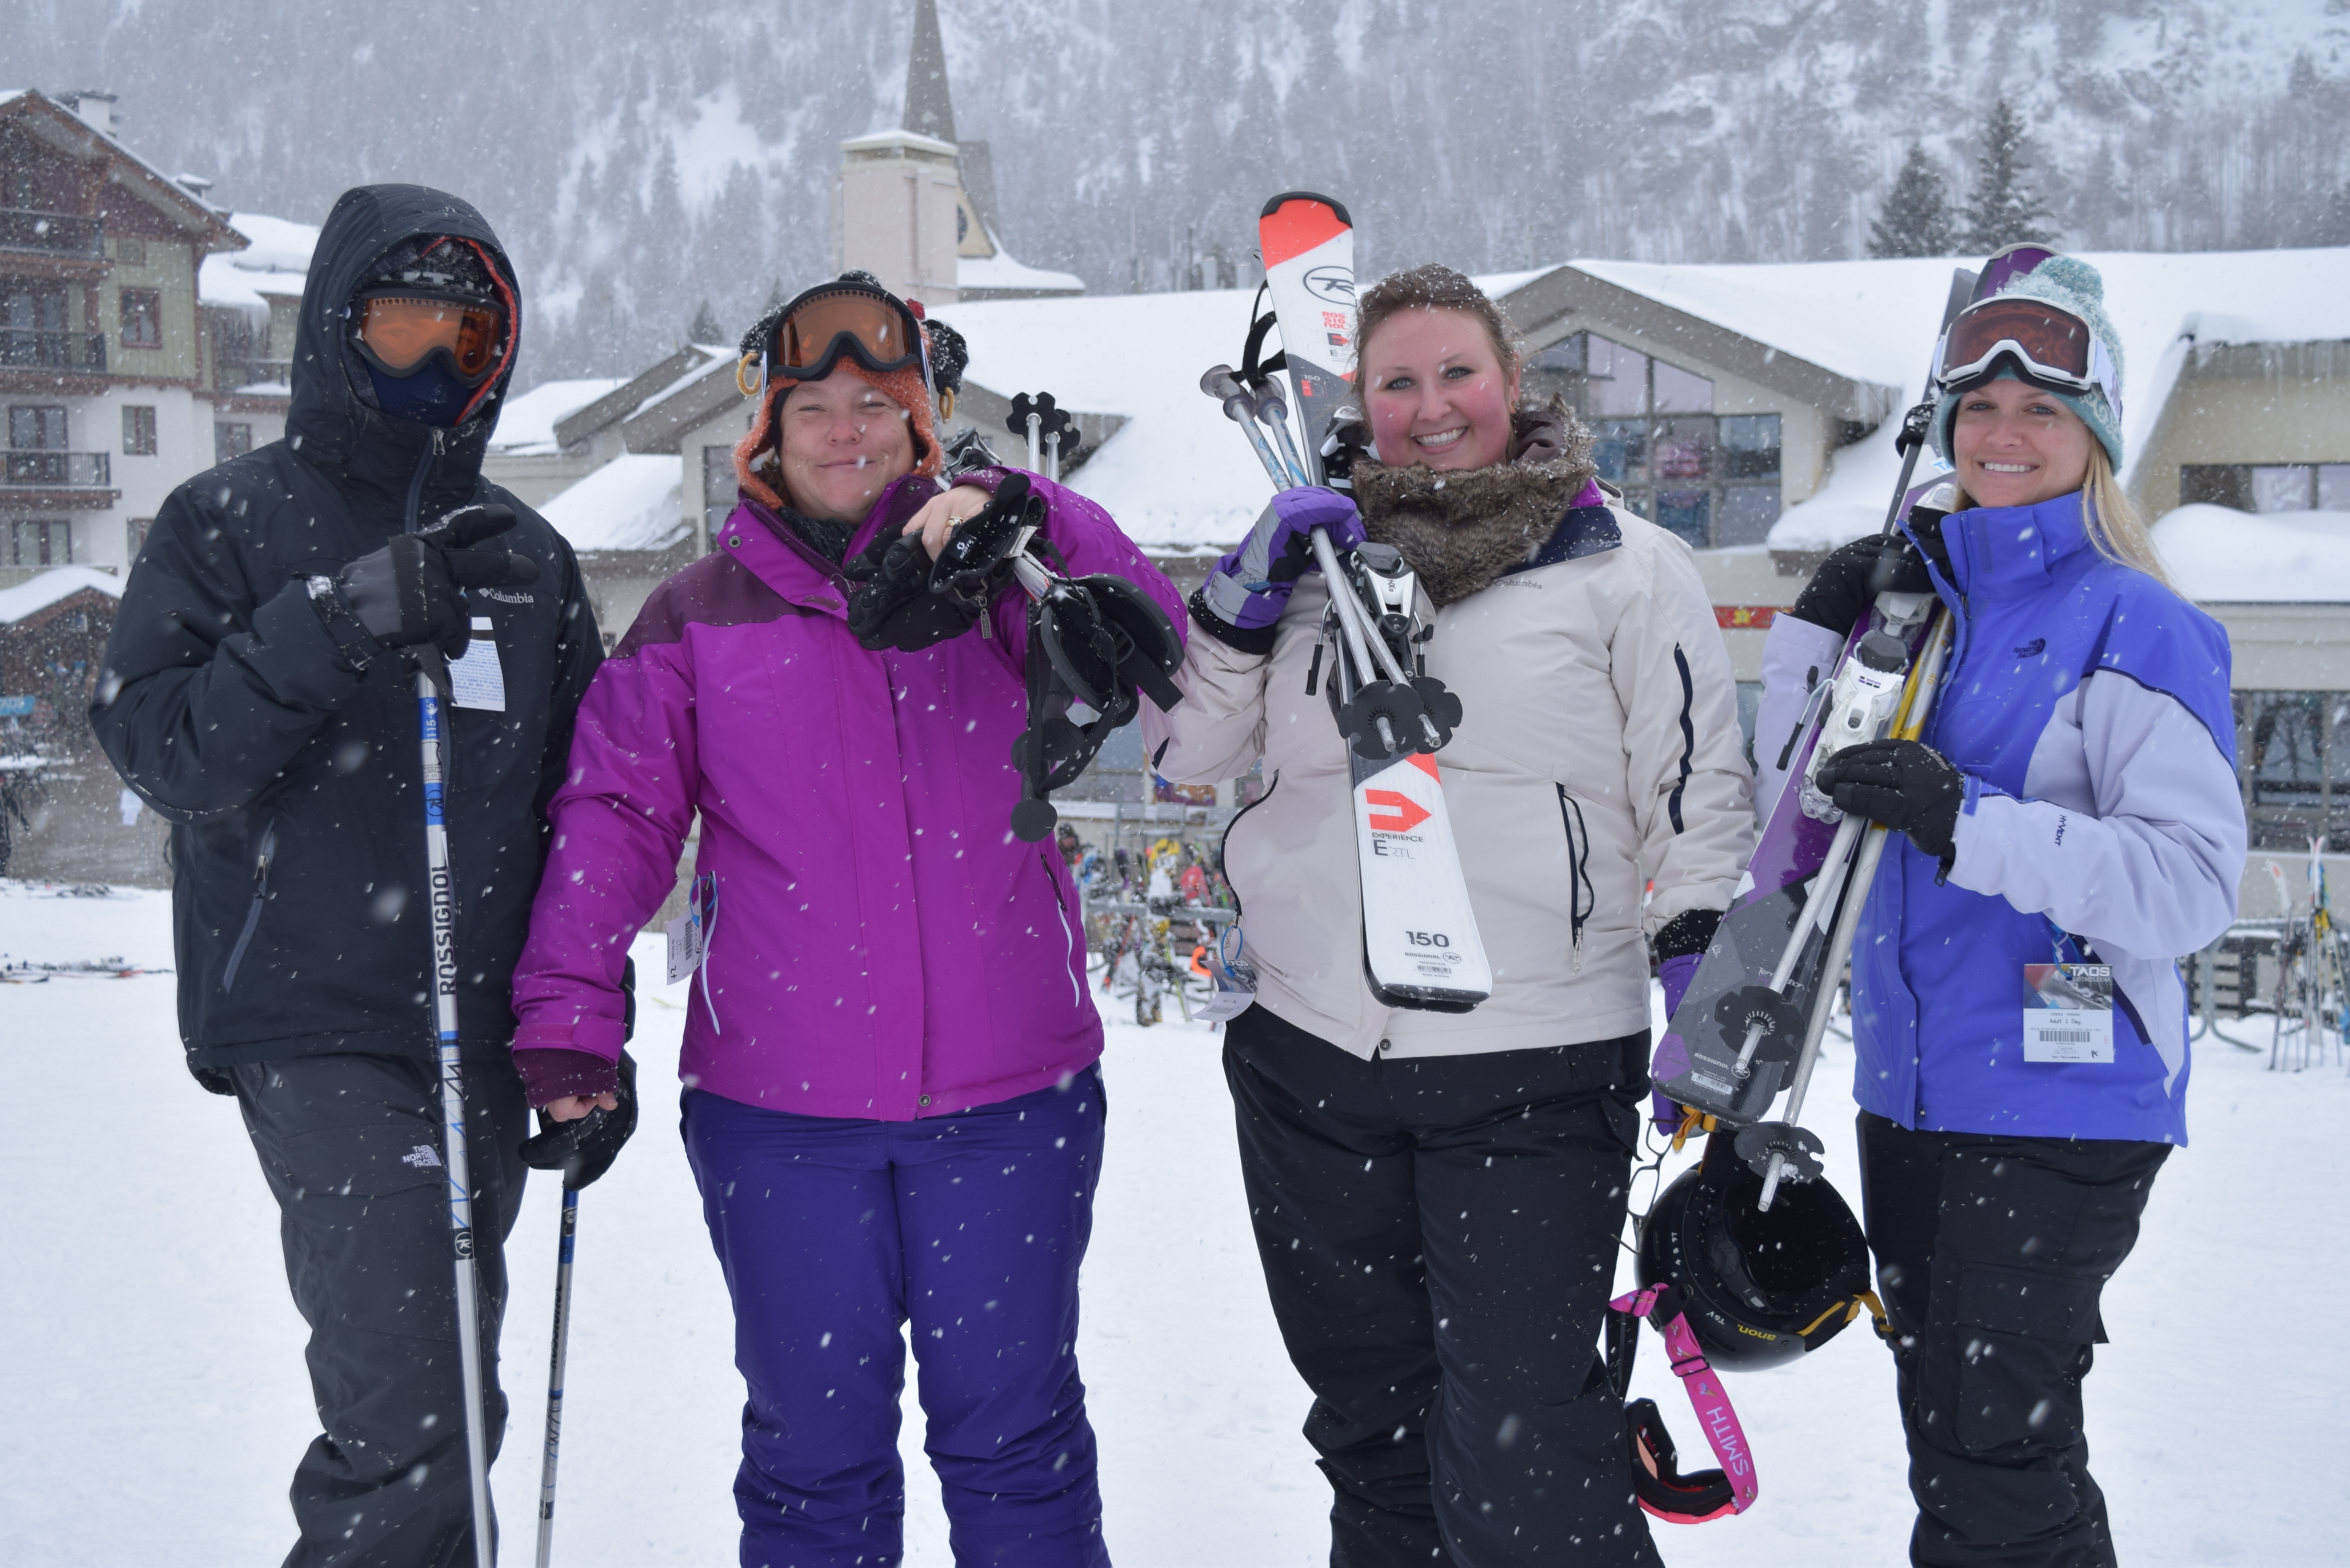 Four skiers pose side-by-side on a snowy day at Taos Ski Valley, lodge in background